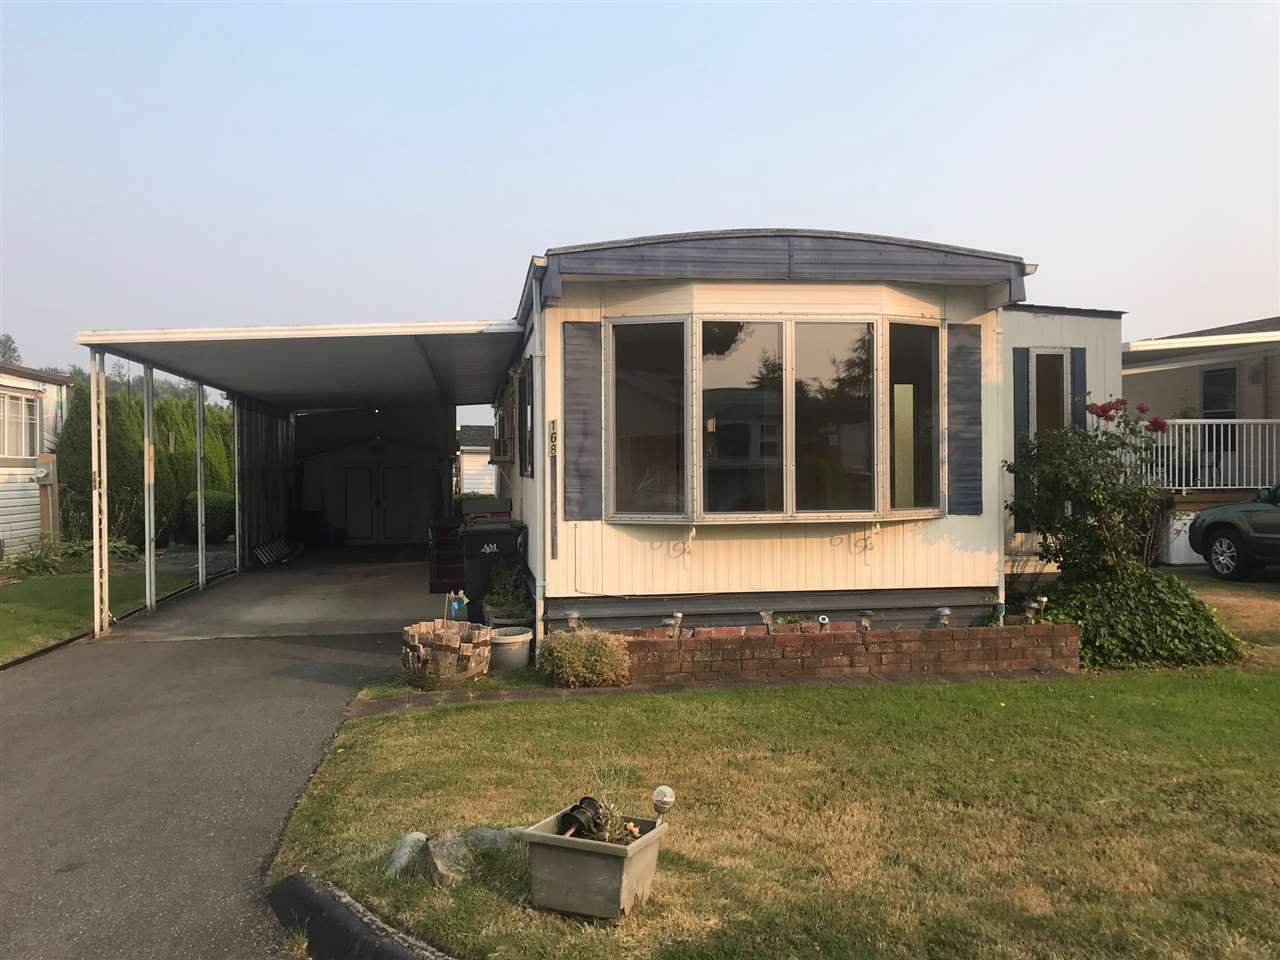 """Main Photo: 168 1840 160 Street in Surrey: King George Corridor Manufactured Home for sale in """"BREAKAWAY BAYS"""" (South Surrey White Rock)  : MLS®# R2297809"""